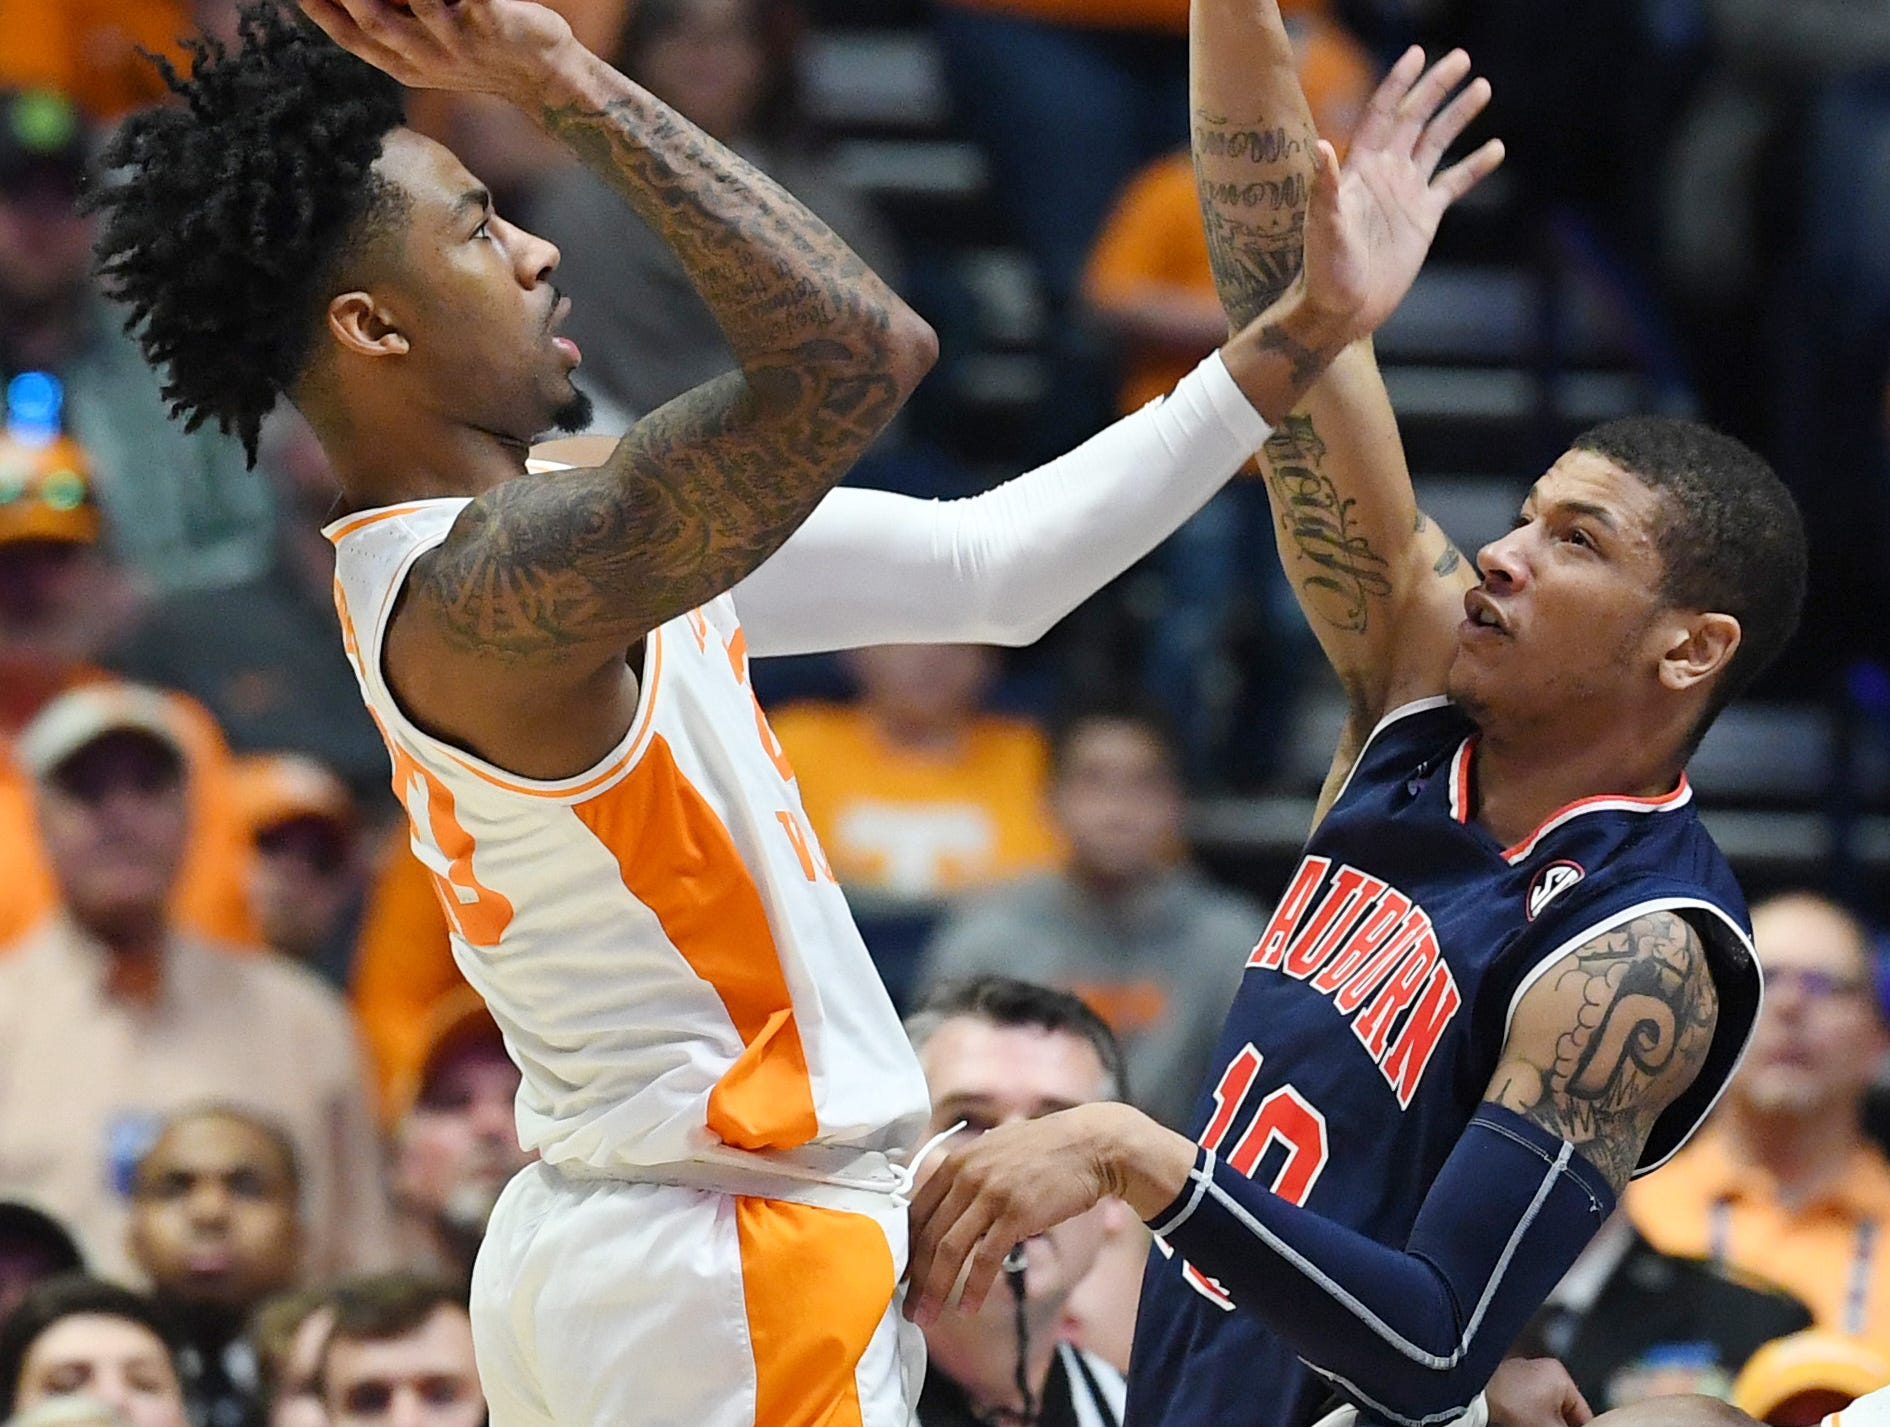 Mar 17, 2019; Nashville, TN, USA; Tennessee Volunteers guard Jordan Bowden (23) shoots over Auburn Tigers guard Samir Doughty (10) during the second half in the SEC conference tournament championship game at Bridgestone Arena. Mandatory Credit: Christopher Hanewinckel-USA TODAY Sports